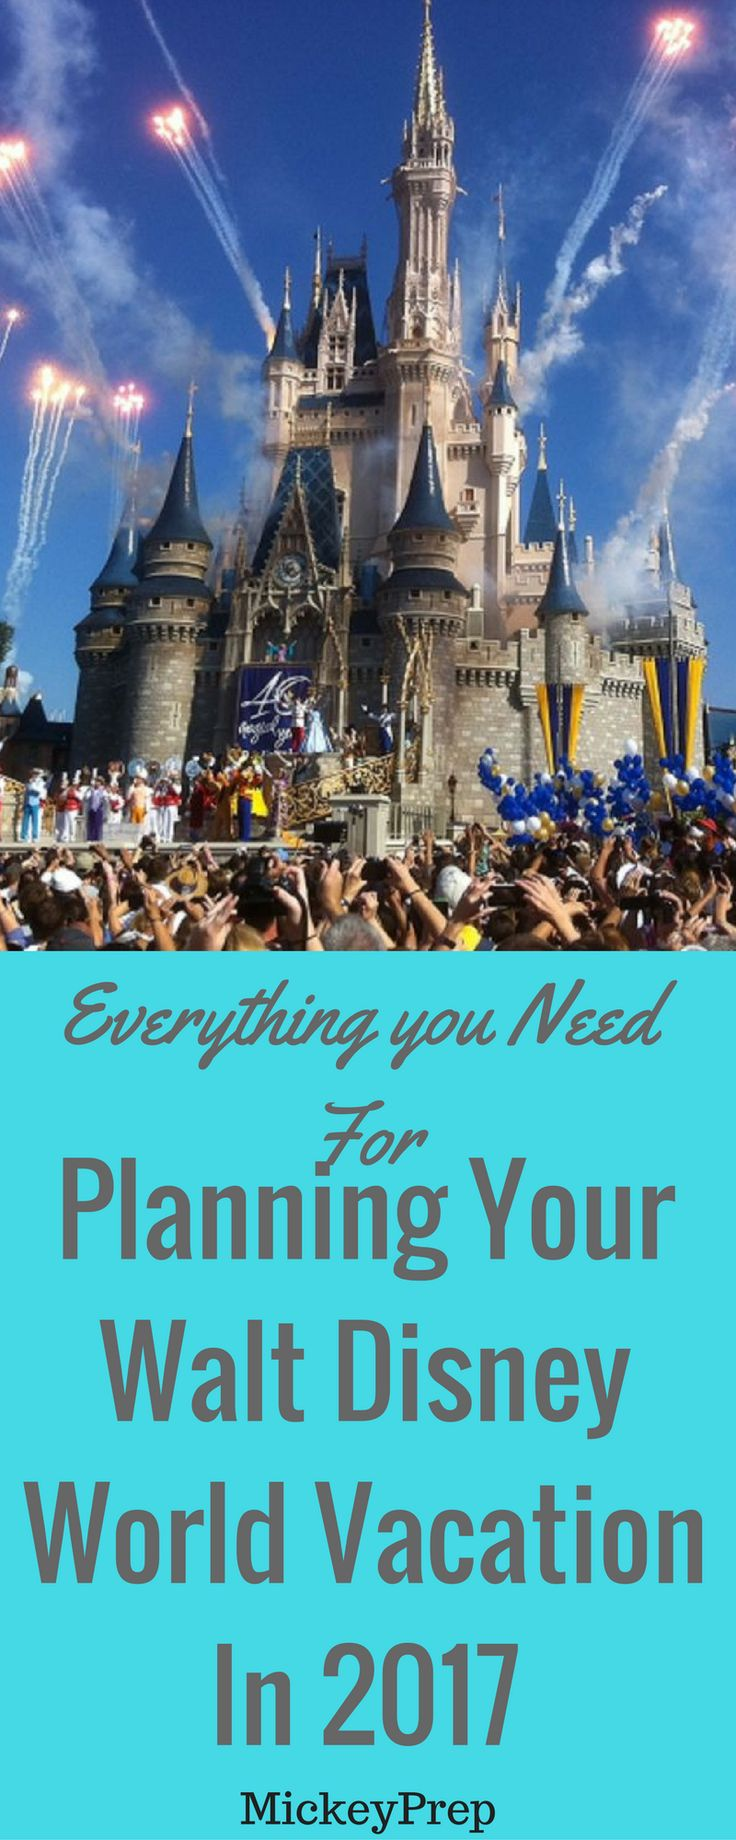 Everything you need to know to plan your Walt Disney World vacation in 2017.